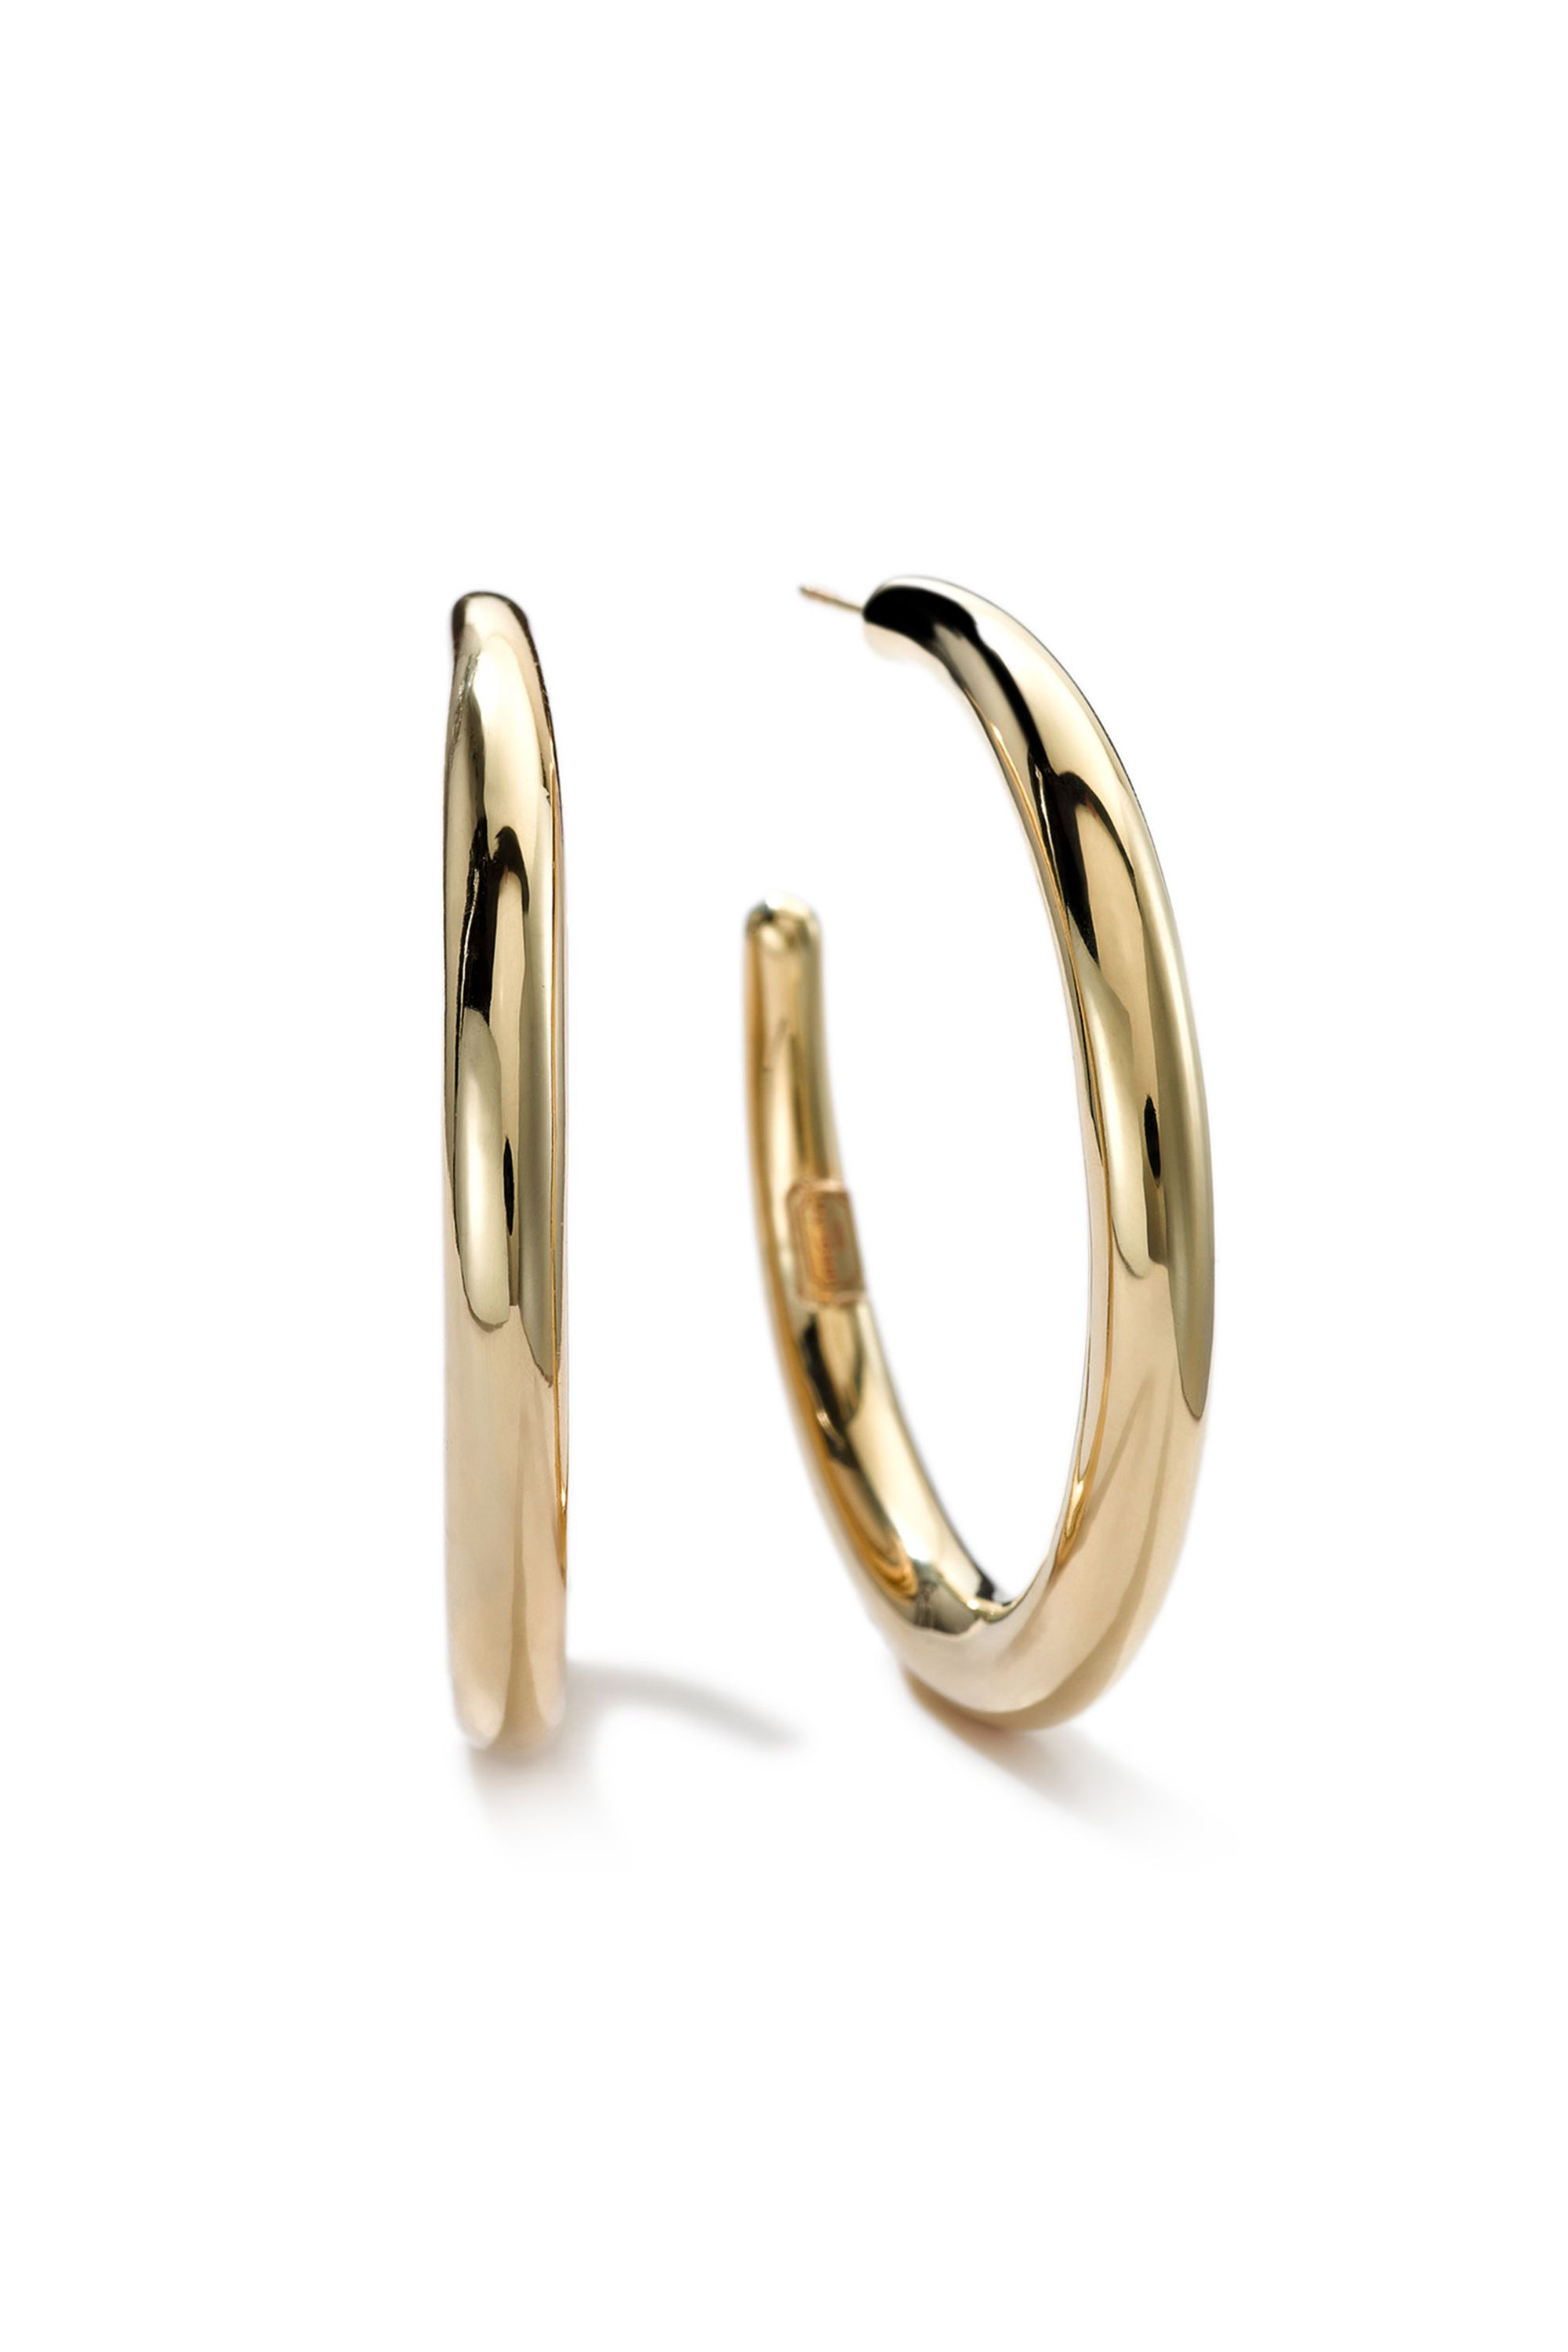 """<p>          Ippolita 18K Gold #3 Smooth Hoop Earrings, $1,695; <a href=""""http://www.neimanmarcus.com/Ippolita-18K-Gold-3-Smooth-Hoop-Earrings/prod175060029/p.prod?icid=&searchType=MAIN&rte=%2Fsearch.jsp%3Ffrom%3DbrSearch%26request_type%3Dsearch%26search_type%3Dkeyword%26q%3Dhoop+earrings&eItemId=prod175060029&cmCat=search&tc=97&currentItemCount=27&q=hoop+earrings&searchURL=/search.jsp%3Ffrom%3DbrSearch%26start%3D0%26rows%3D30%26q%3Dhoop+earrings%26l%3Dhoop+earrings%26request_type%3Dsearch%26search_type%3Dkeyword"""">neimanmarcus.com</a>  <span class=""""redactor-invisible-space"""" data-verified=""""redactor"""" data-redactor-tag=""""span"""" data-redactor-class=""""redactor-invisible-space""""></span></p>"""